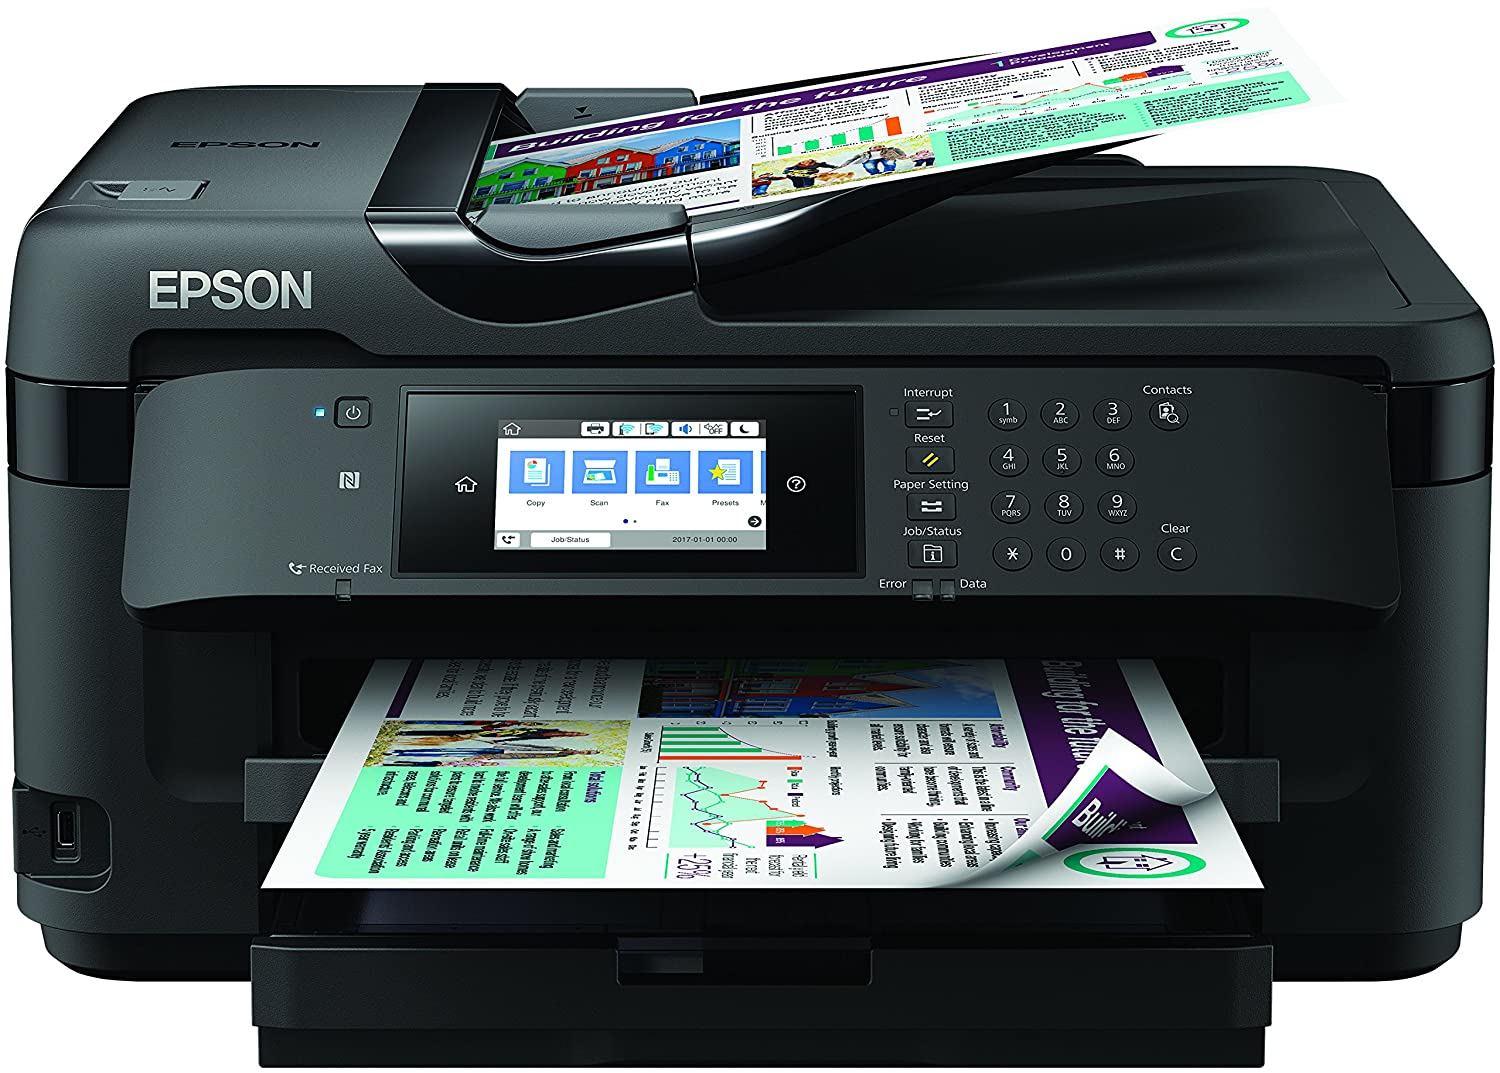 Epson WorkForce WF 7710DWF A3 Wi Fi Printer, Scan And Copier With Fax